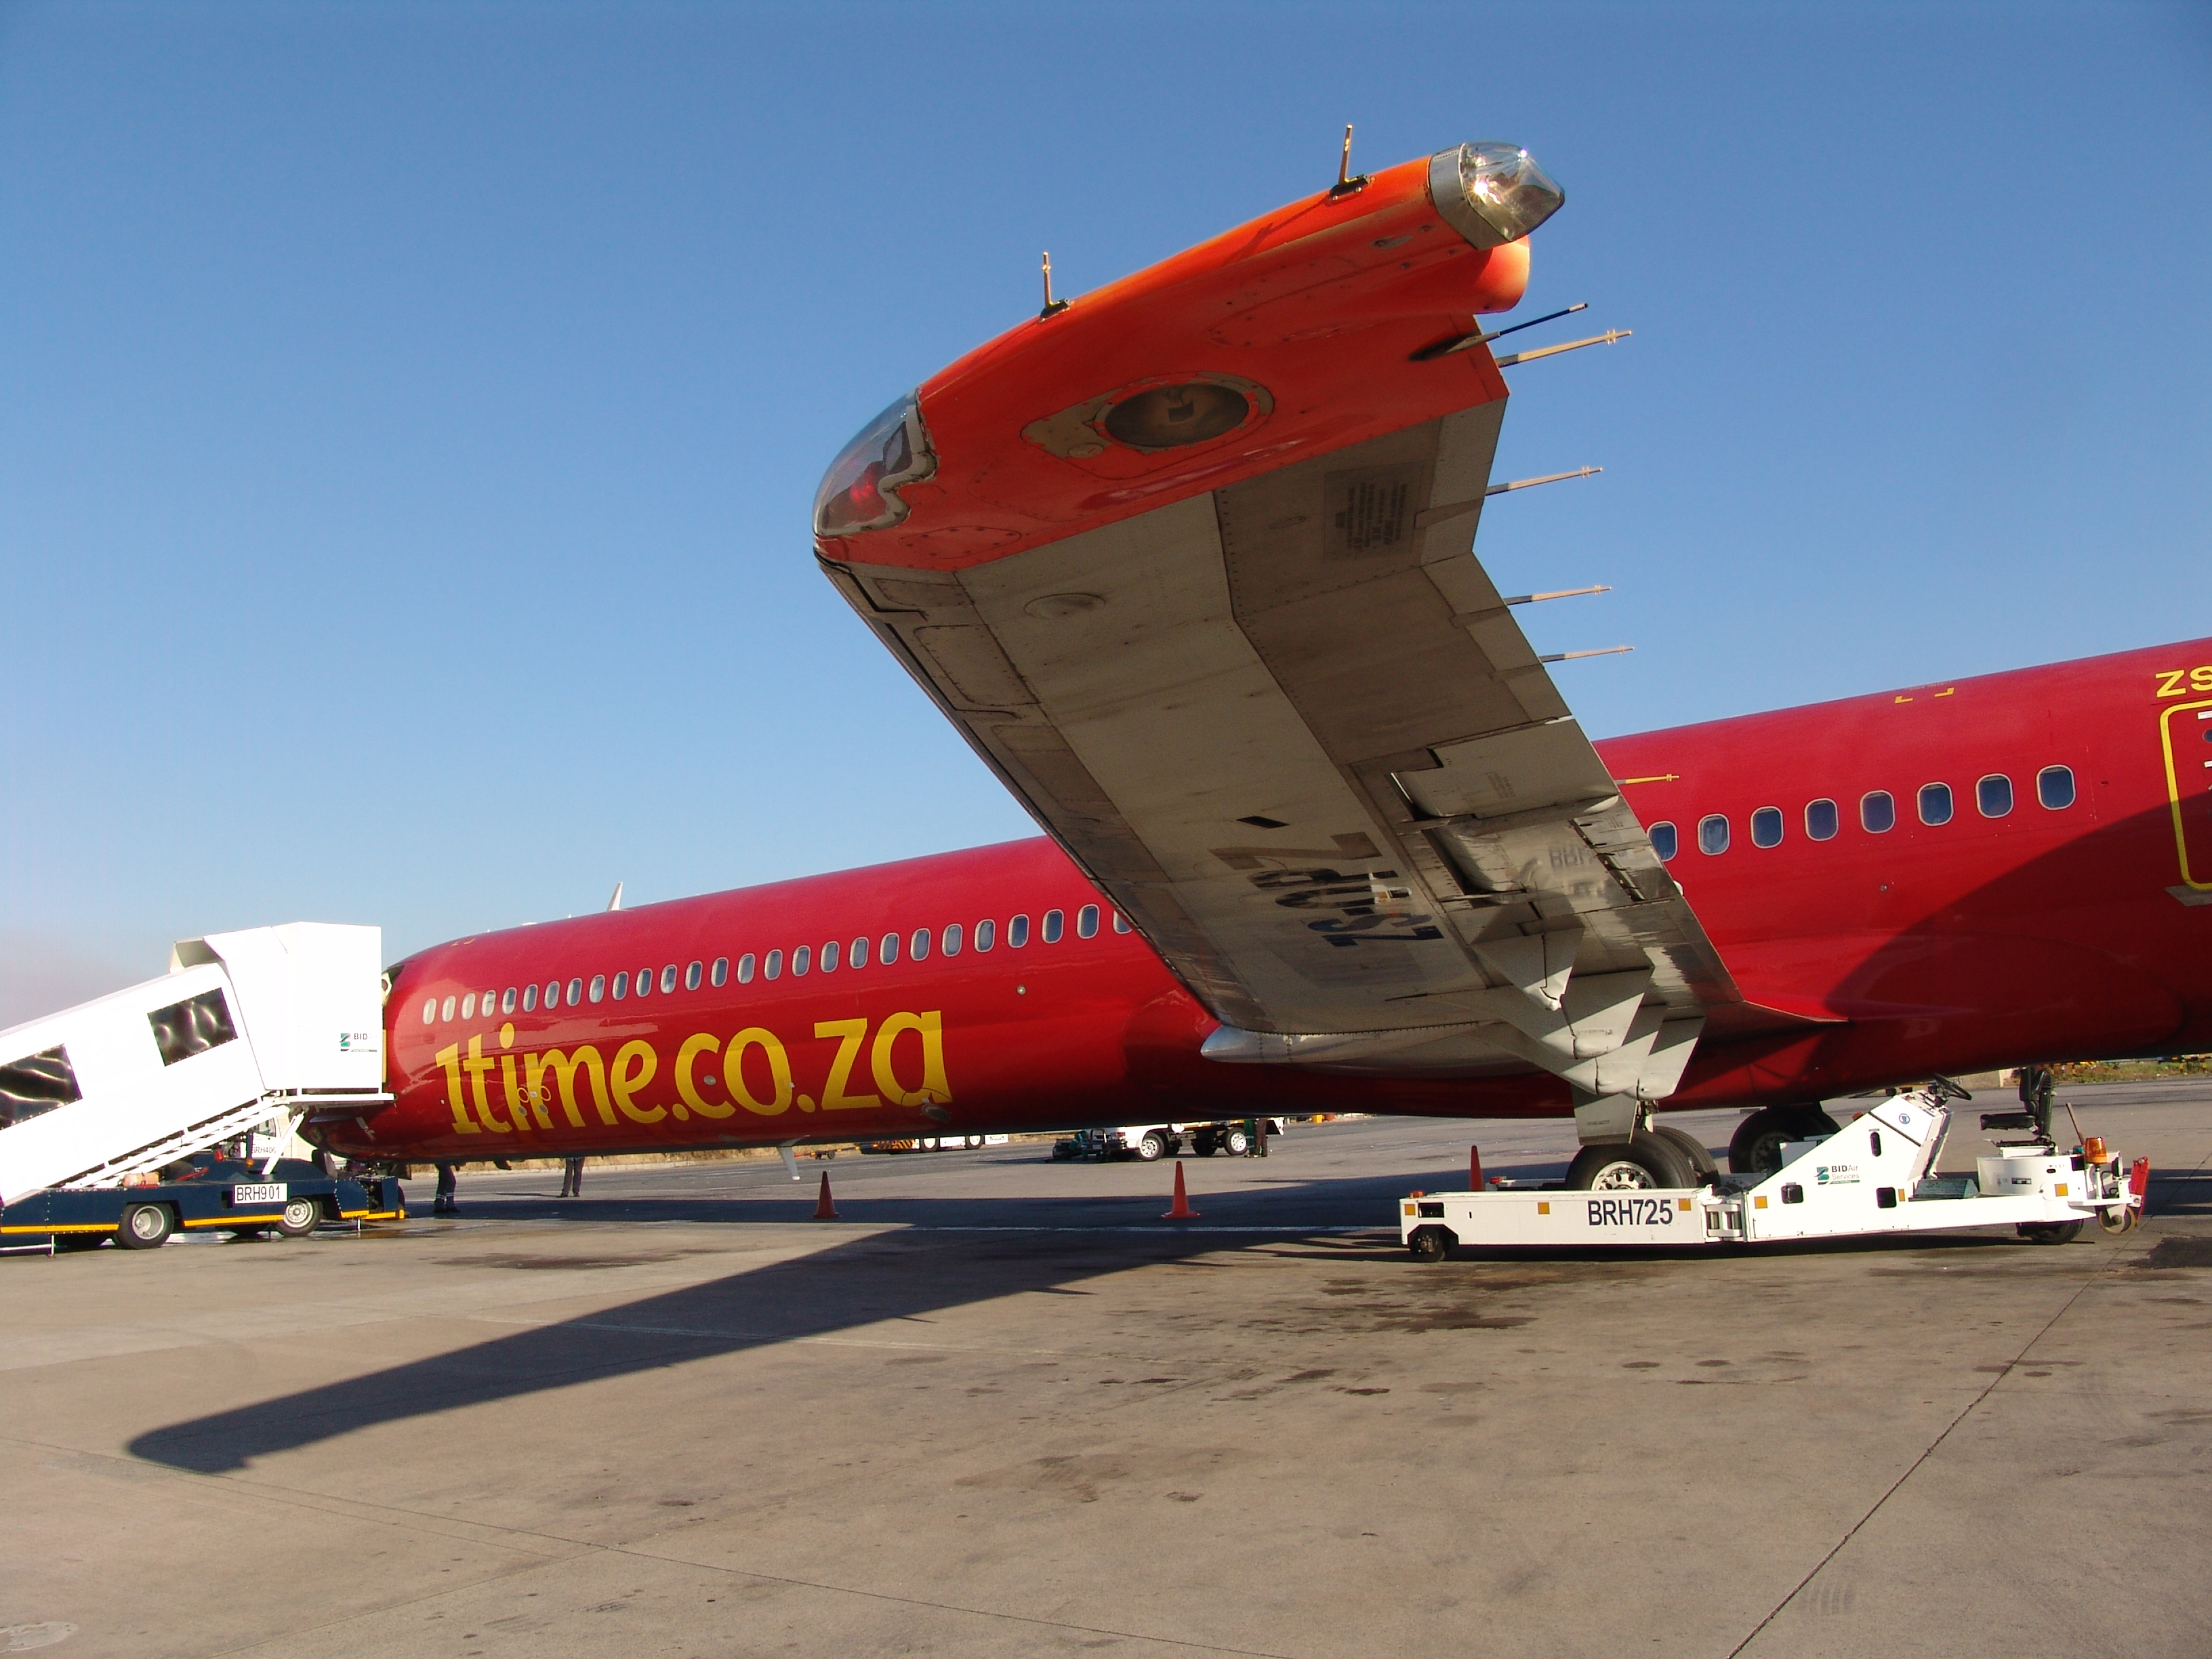 1Time Airlines Flights In South Africa  1TM